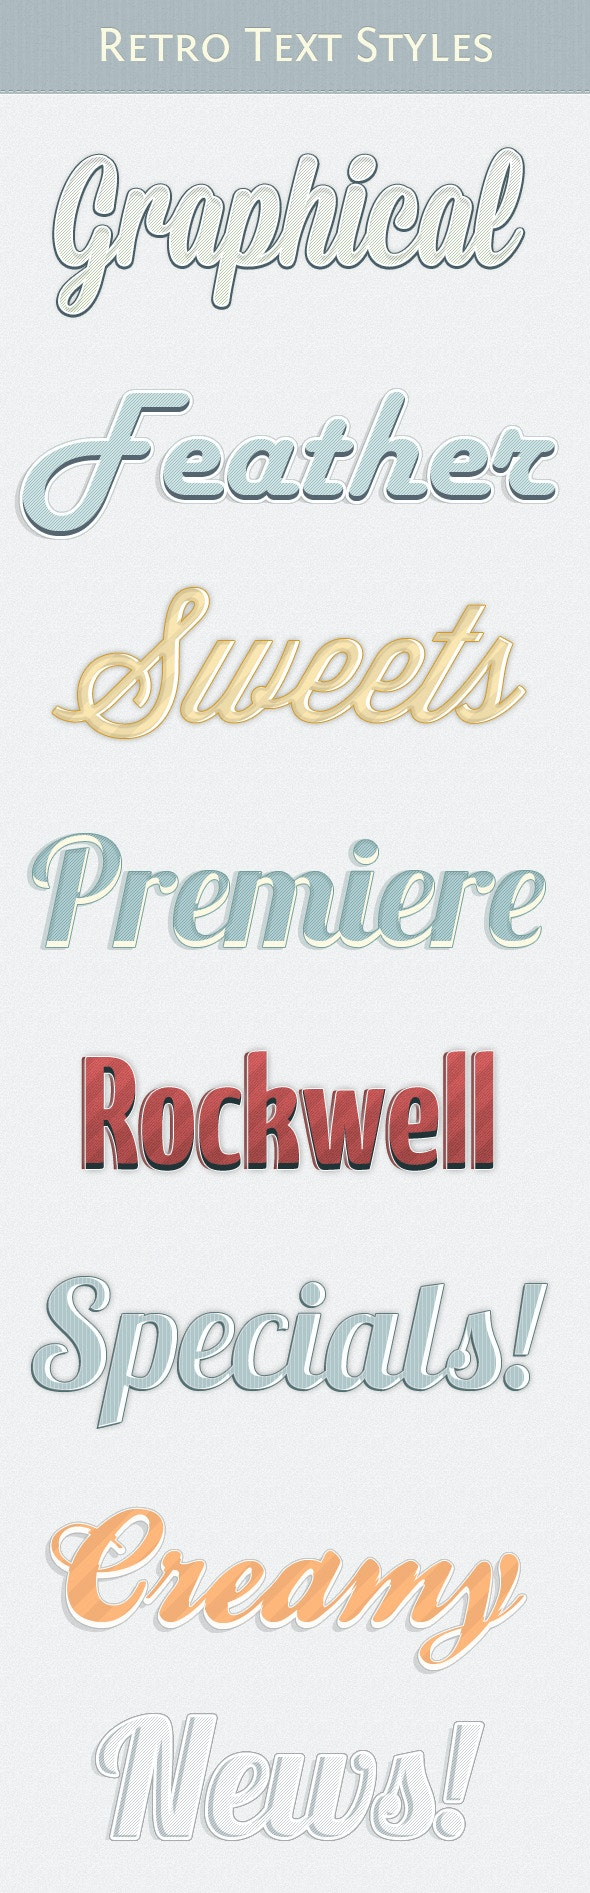 Retro Text Styles Vol. 3 - Text Effects Styles